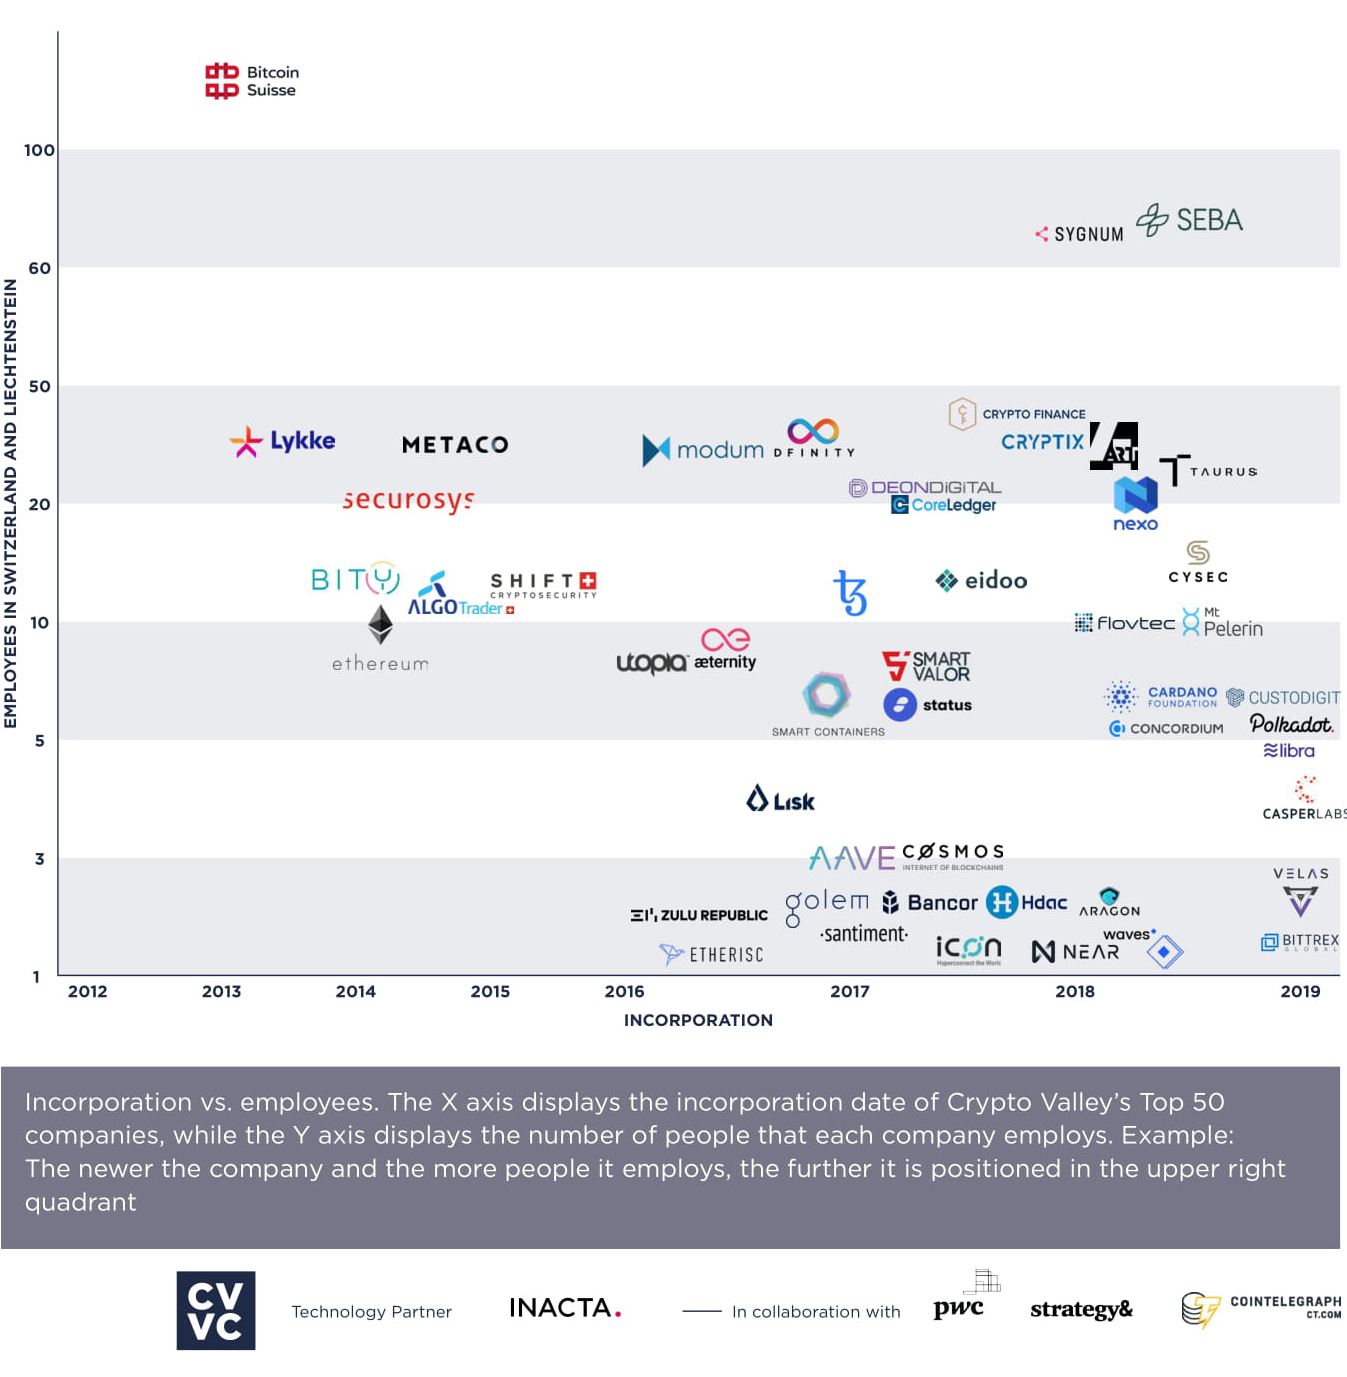 CRYPTO VALLEY TOP 50 COMPANIES EMPLOYMENT LEVELS